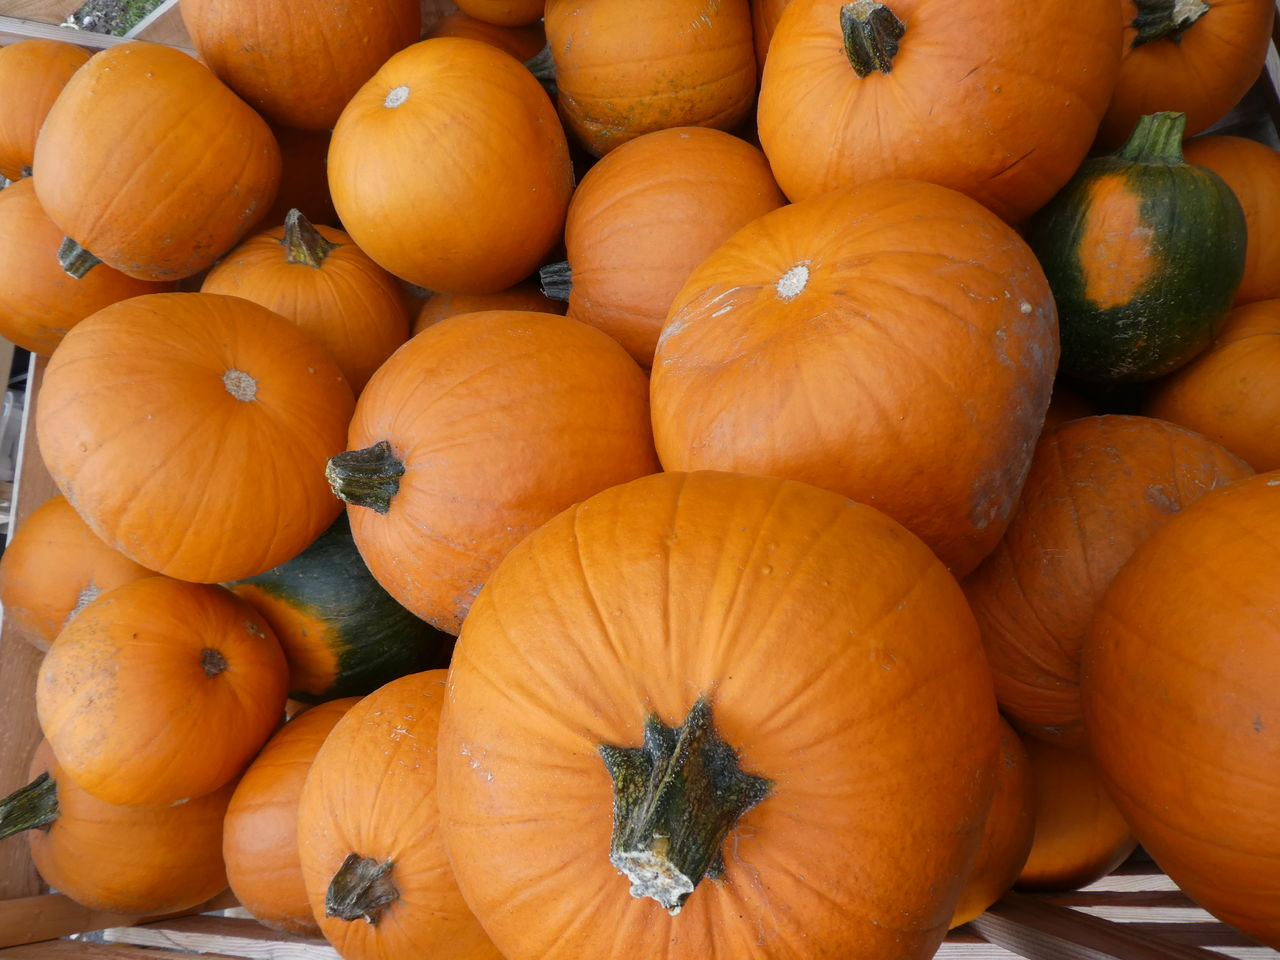 food and drink, food, healthy eating, wellbeing, orange color, freshness, pumpkin, vegetable, large group of objects, market, for sale, no people, full frame, market stall, abundance, still life, high angle view, day, retail, close-up, outdoors, organic, sale, ripe, retail display